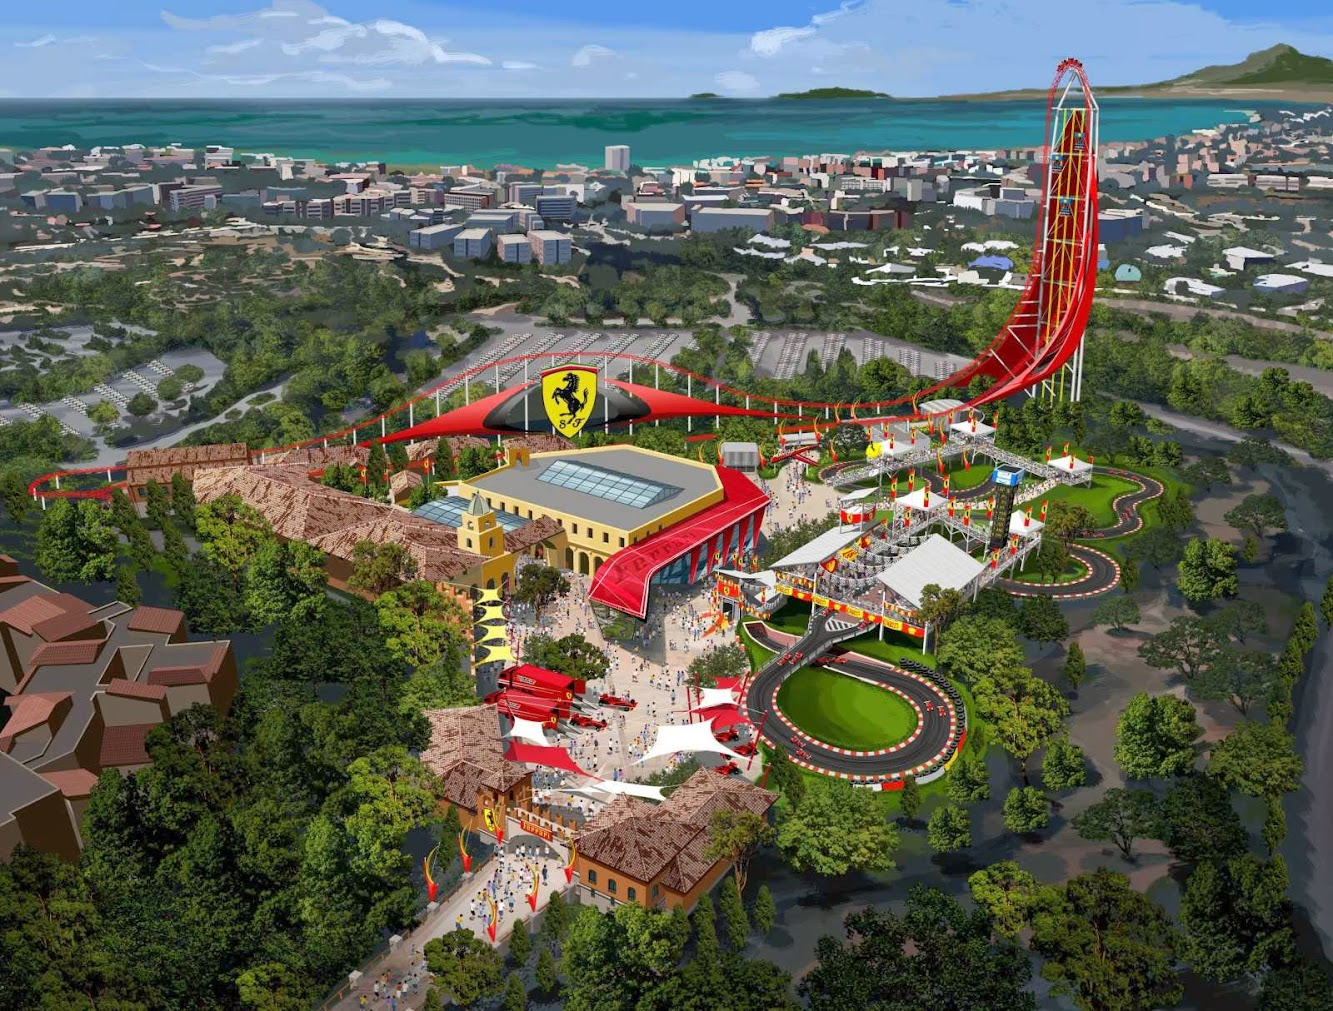 Ferrari Land the first theme park in Europe